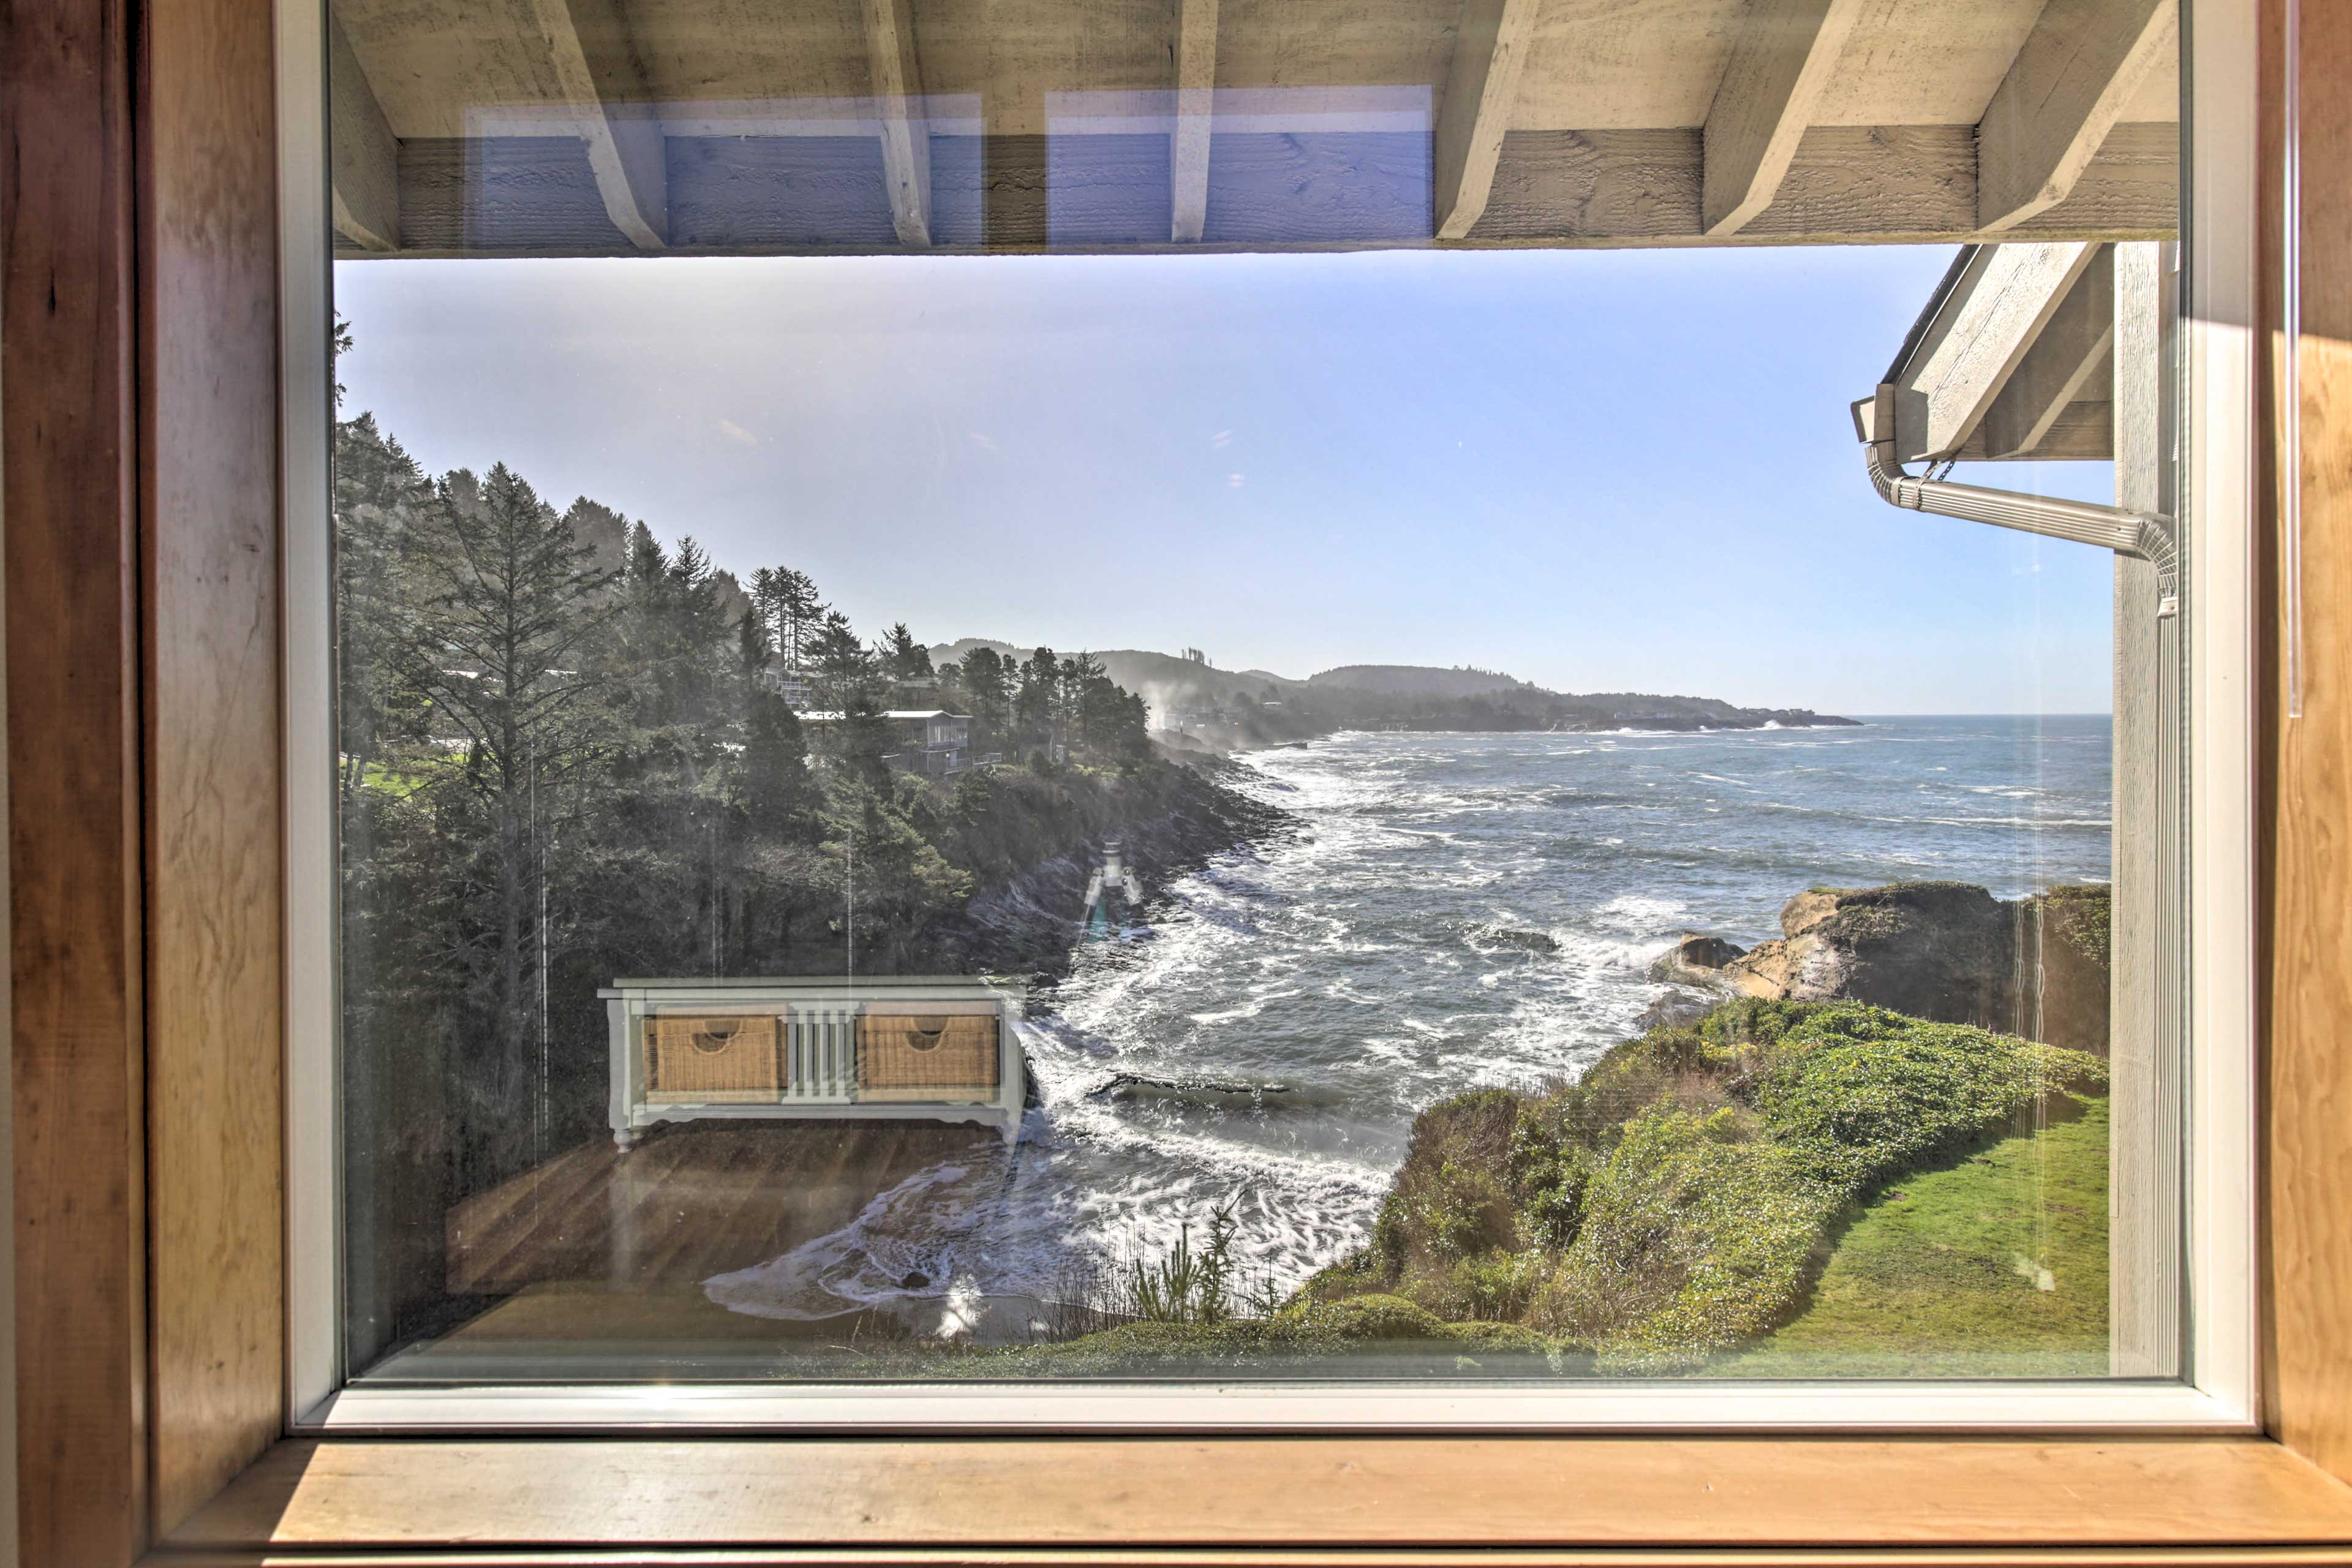 Keep an eye out for whales from the large windows.